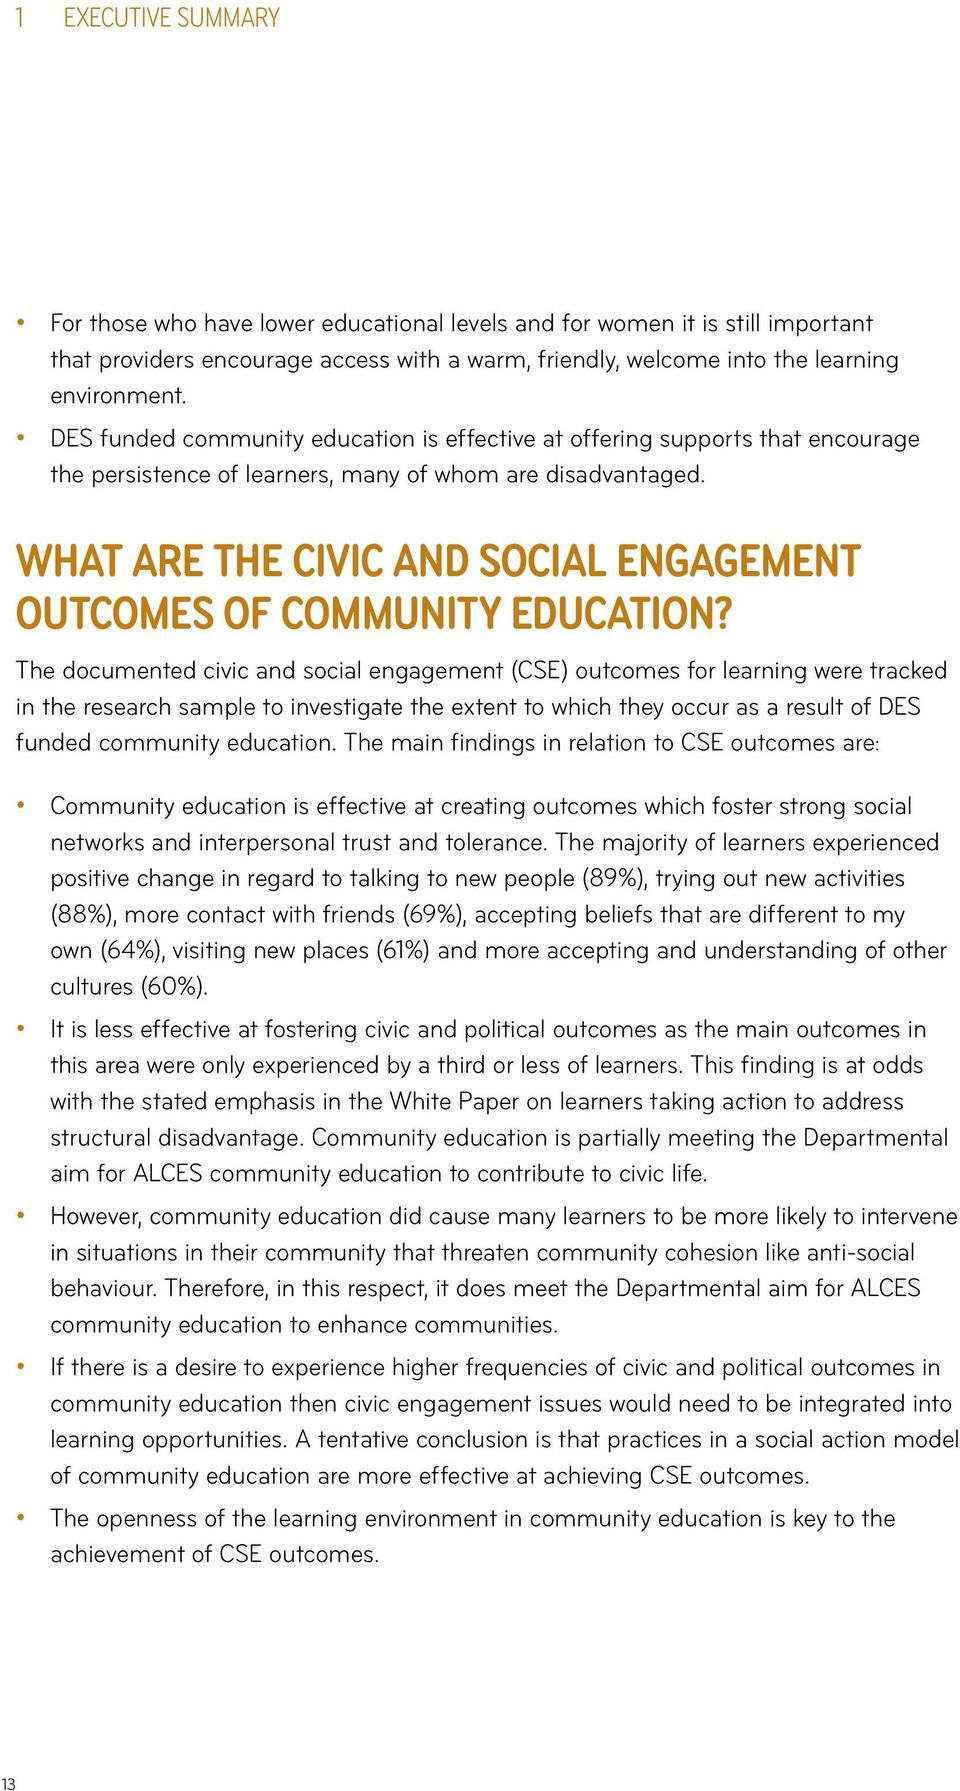 What are the Civic and Social Engagement Outcomes of Community Education?